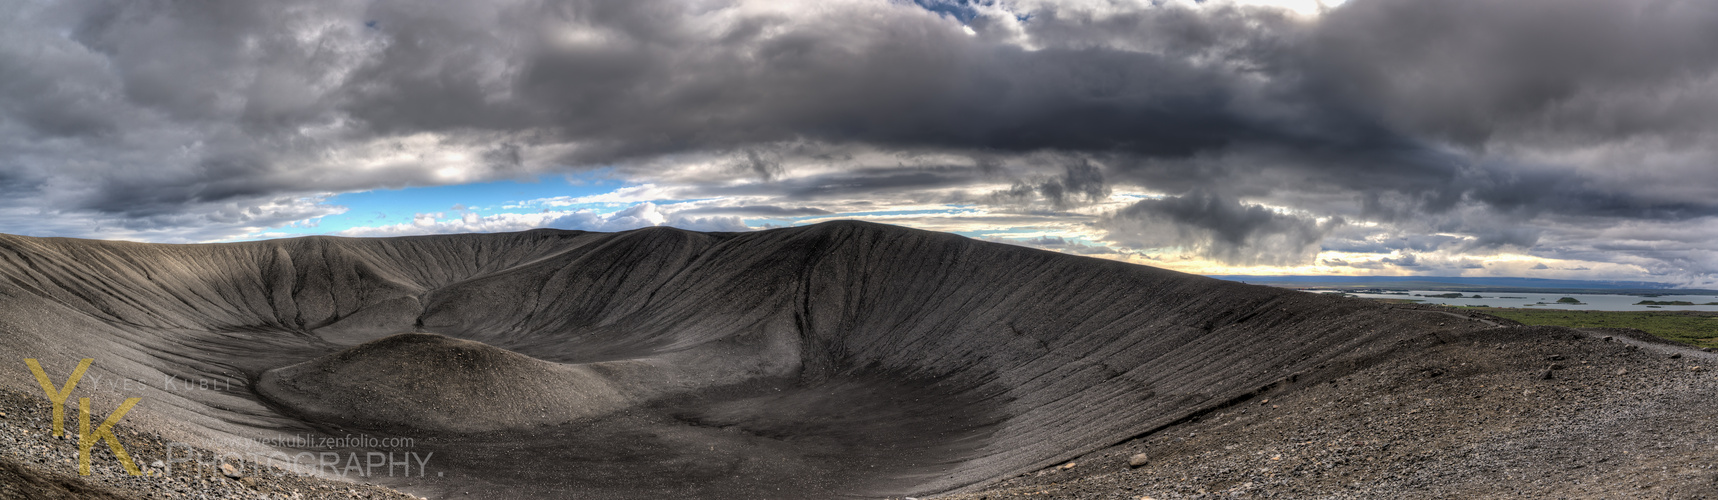 Iceland's Hverfjall crater